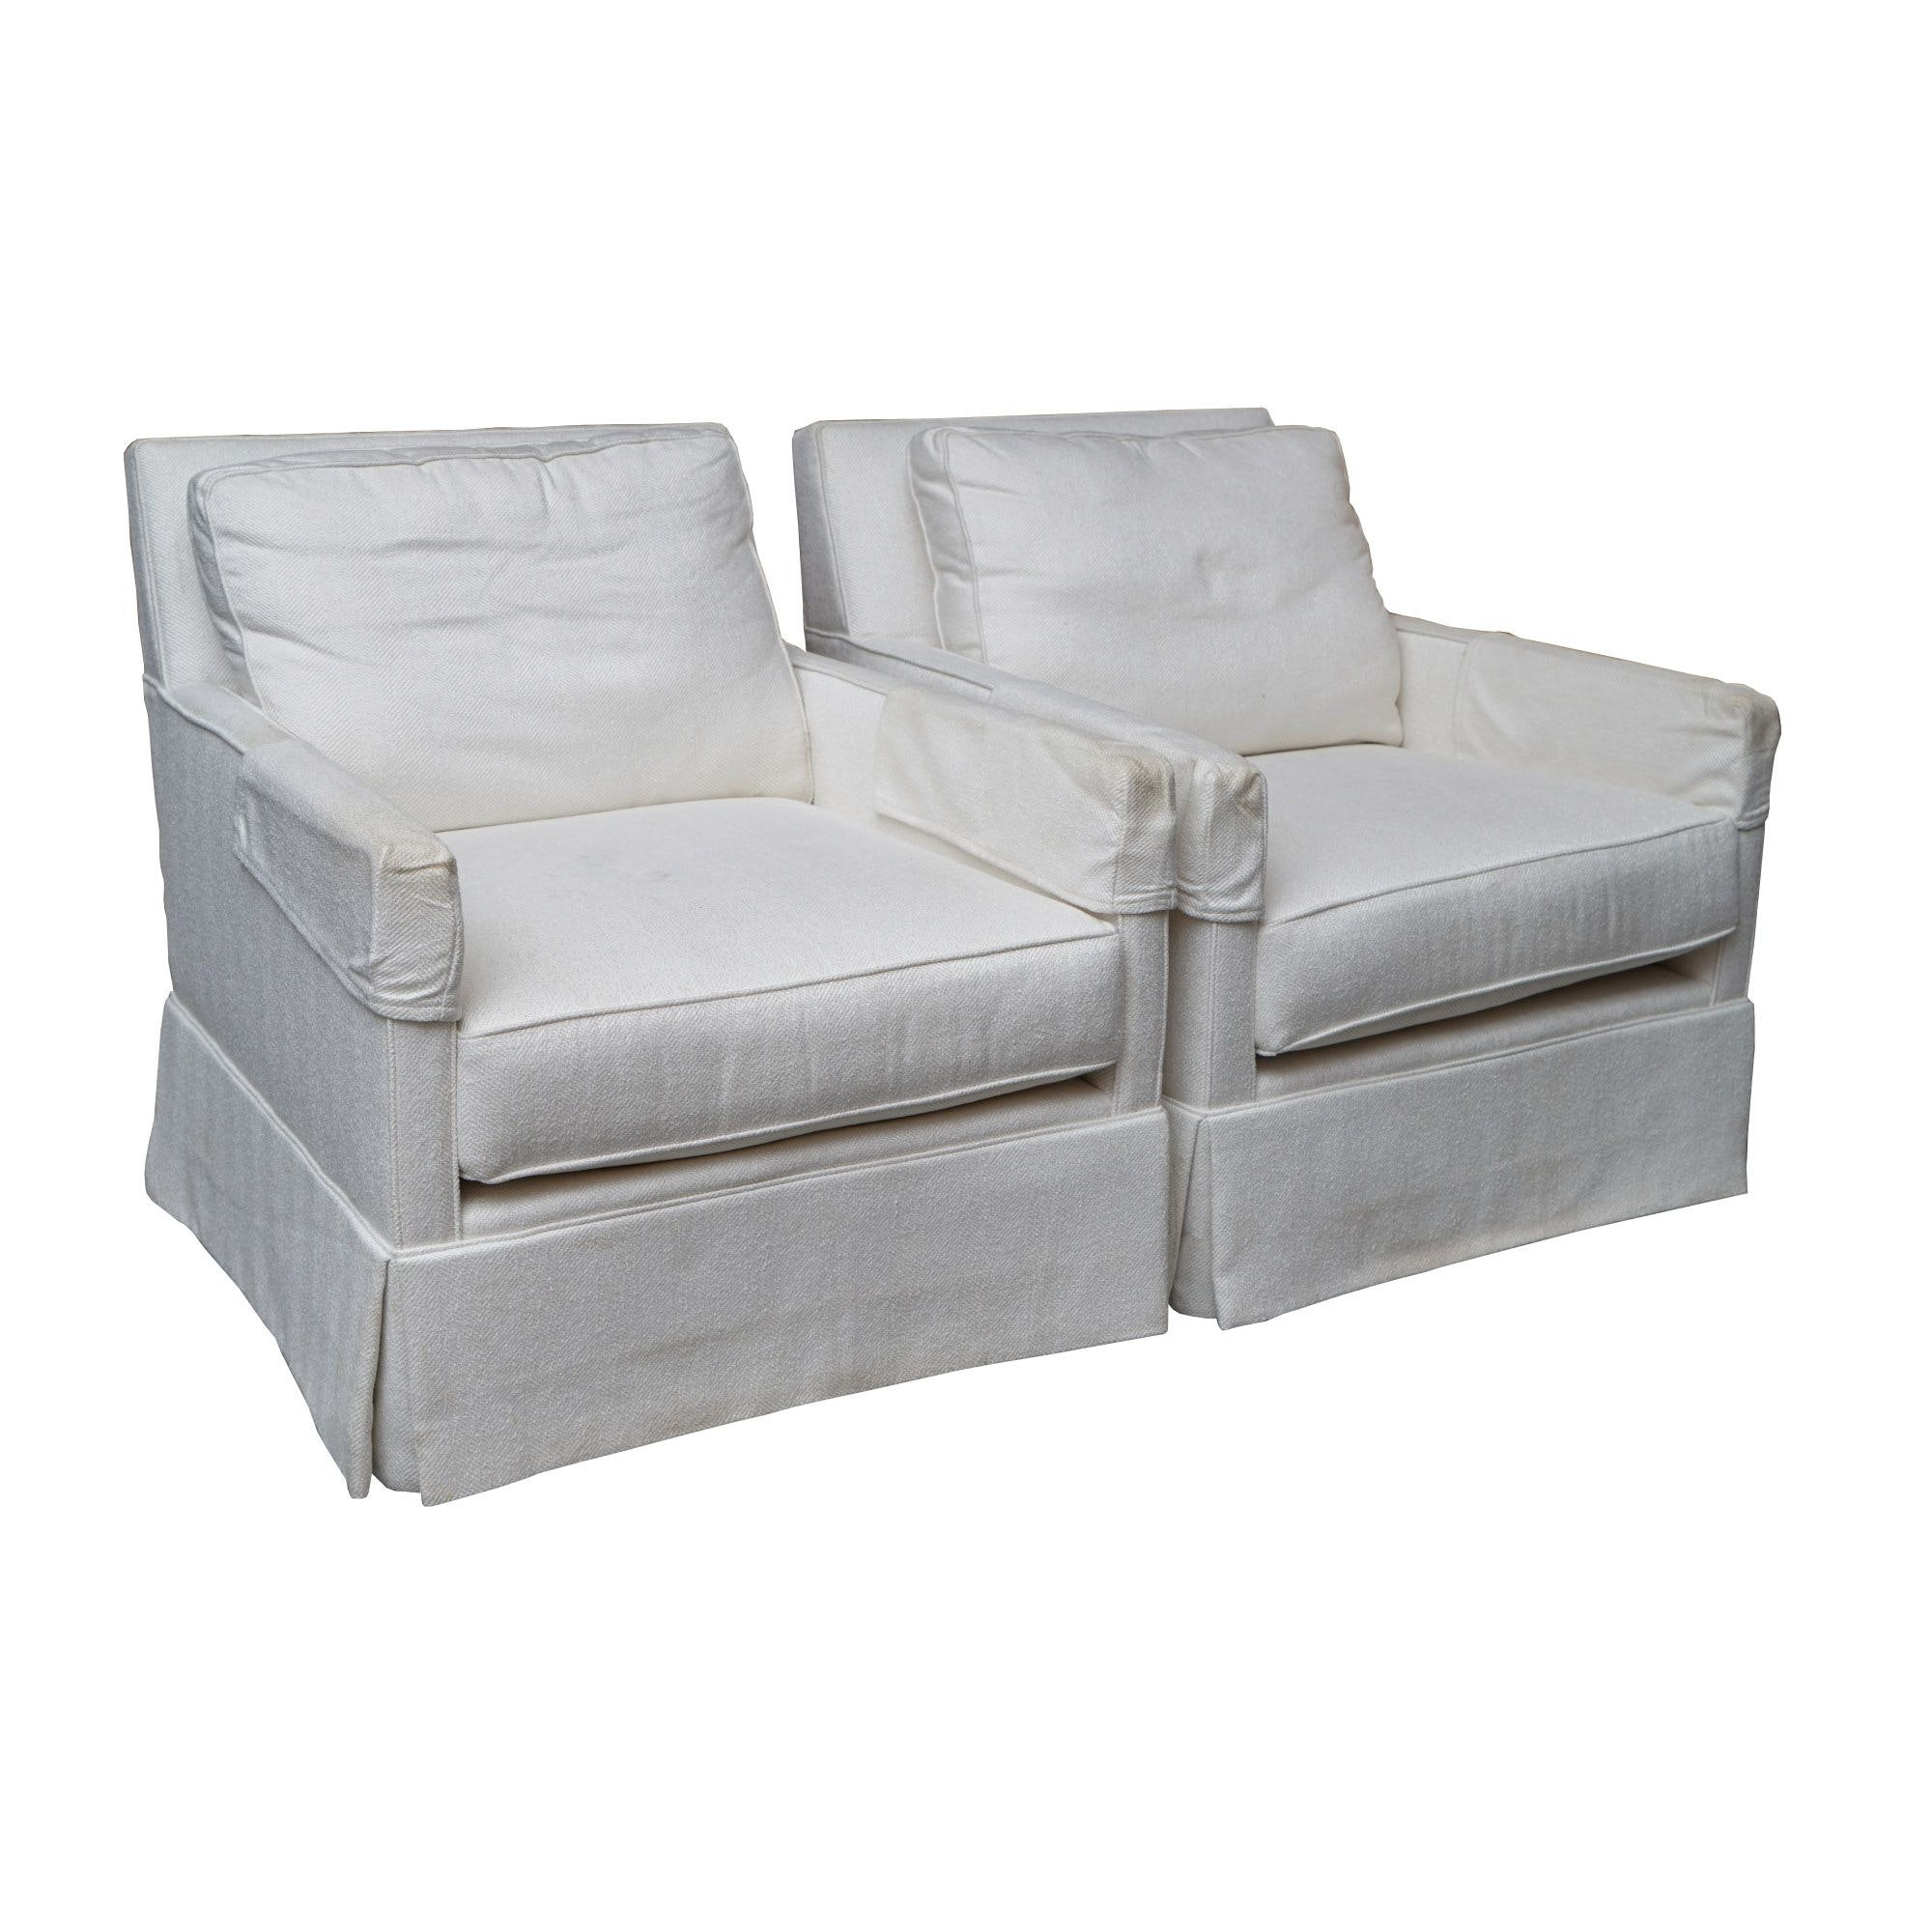 White Upholstered Lounge Chairs by Miles Talbott